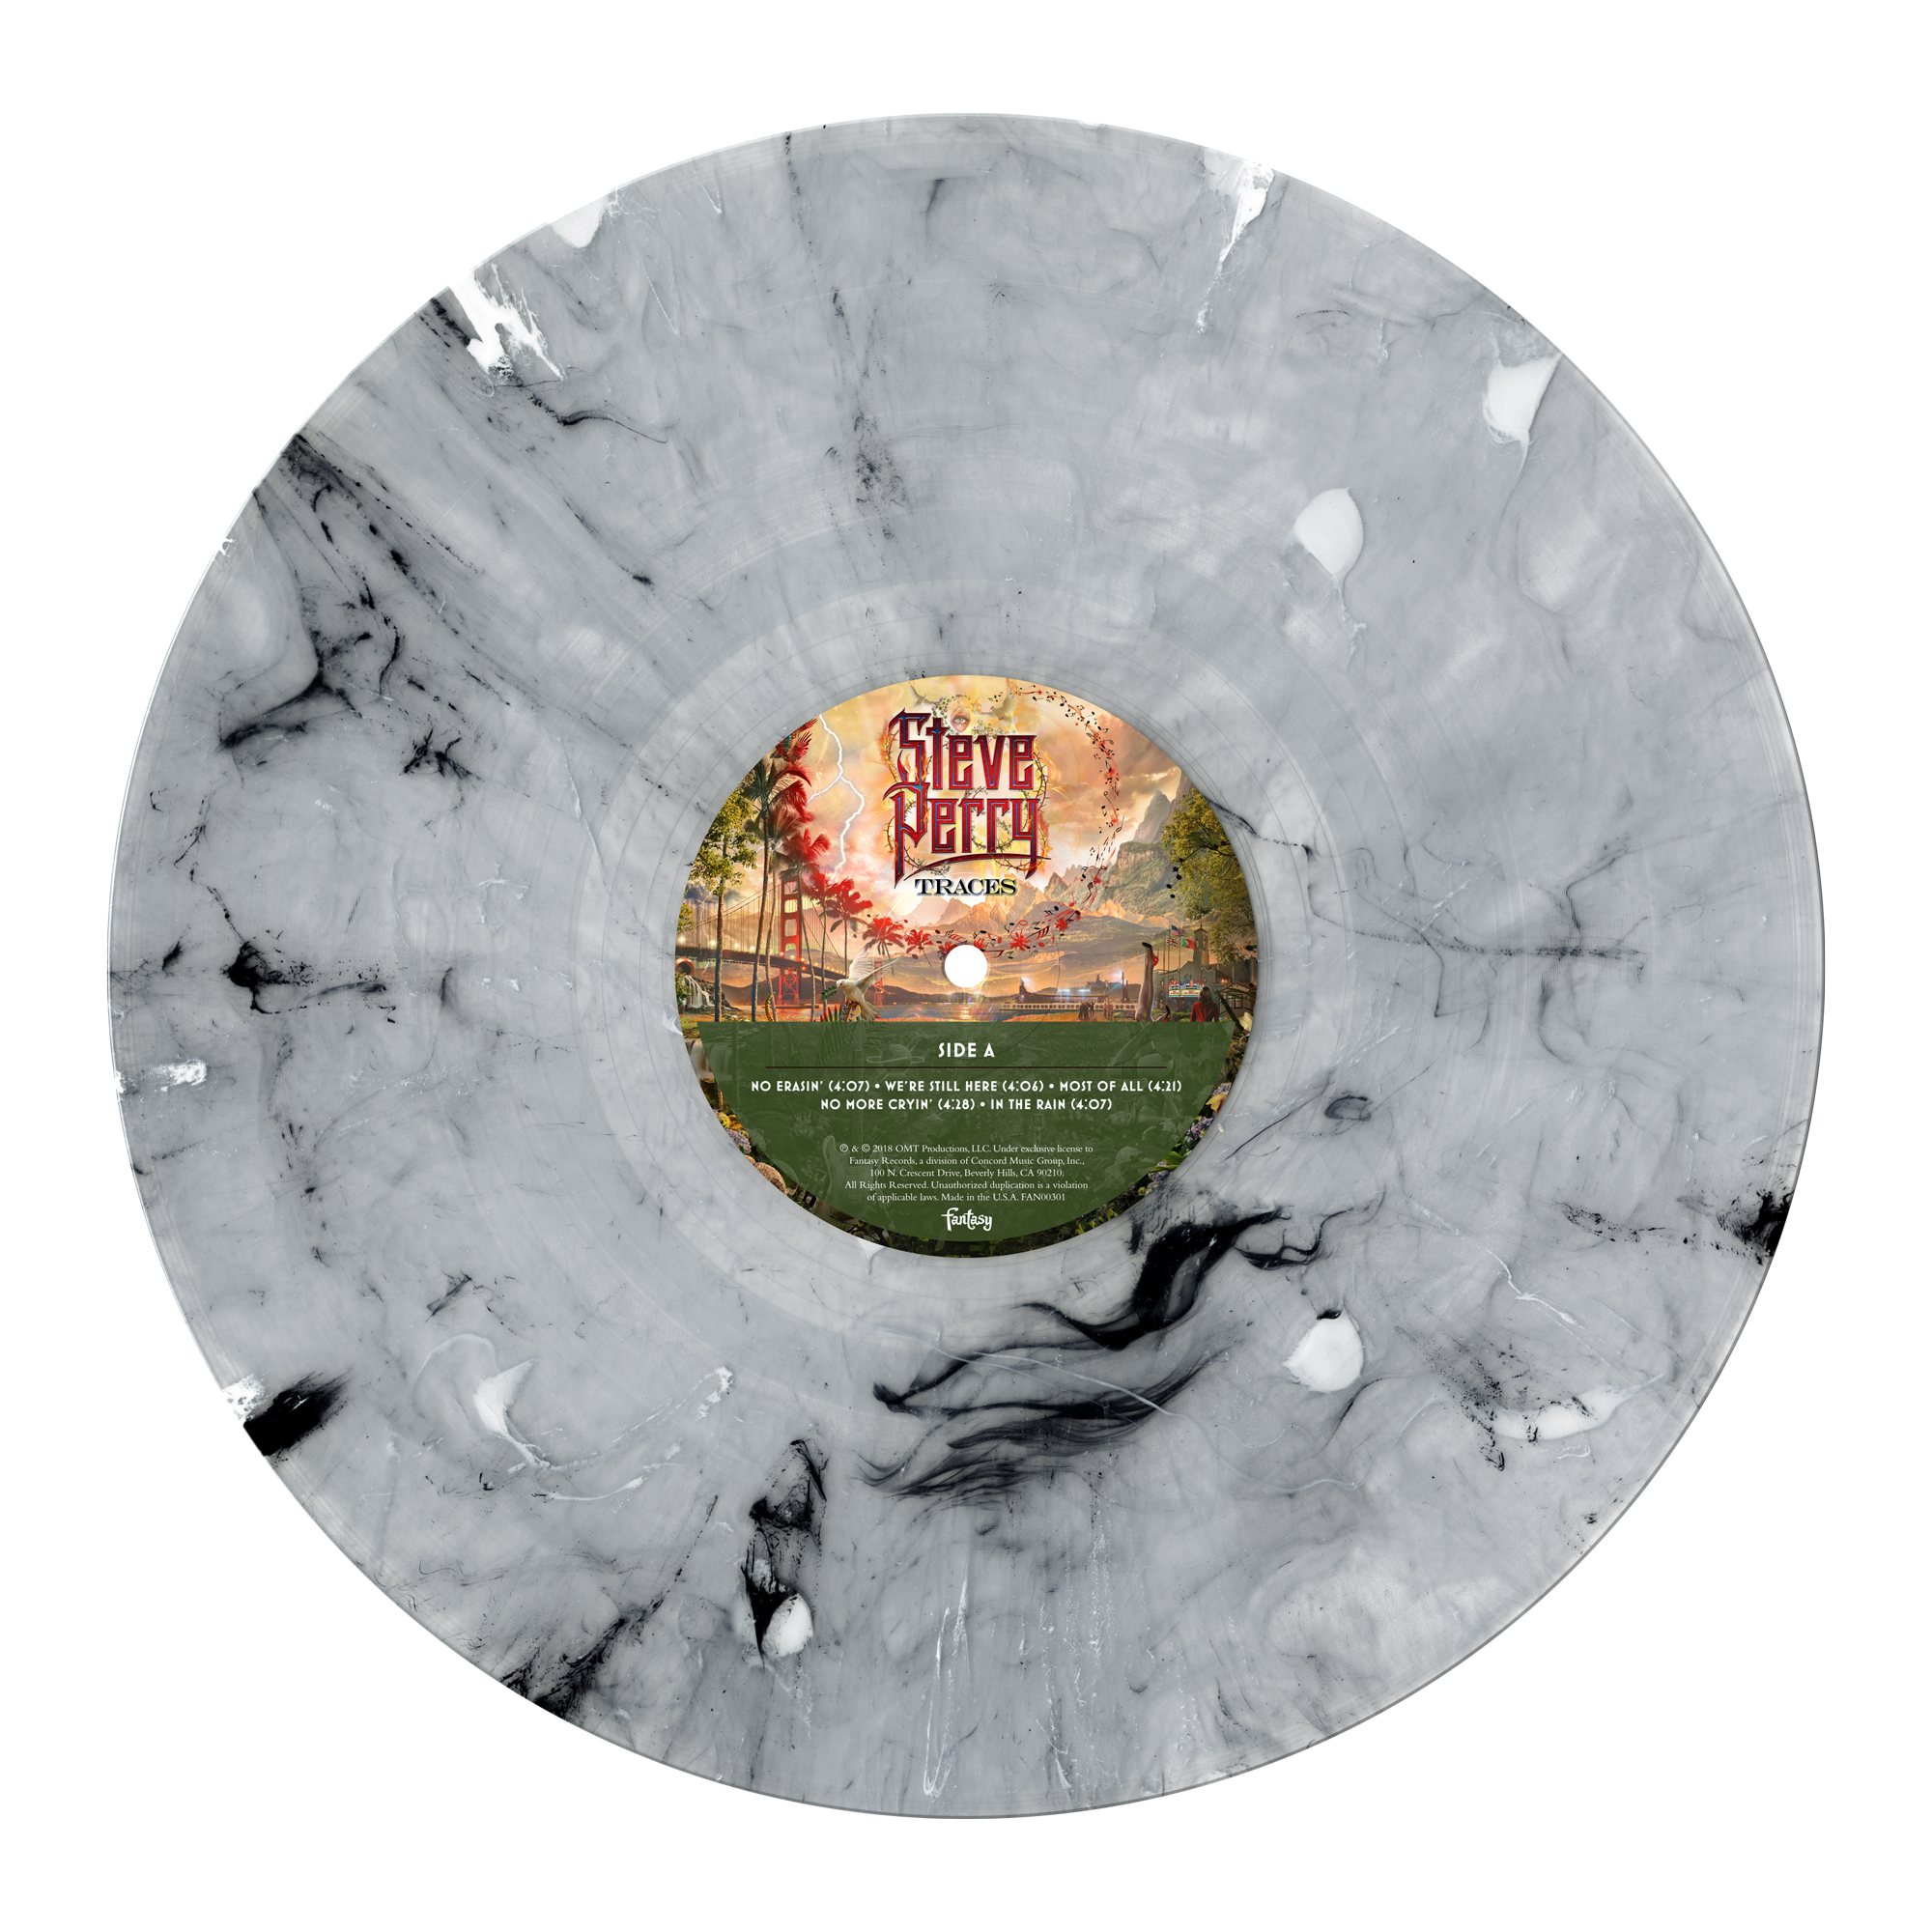 Deluxe Vinyl 2xLP (White Marble) + Patch